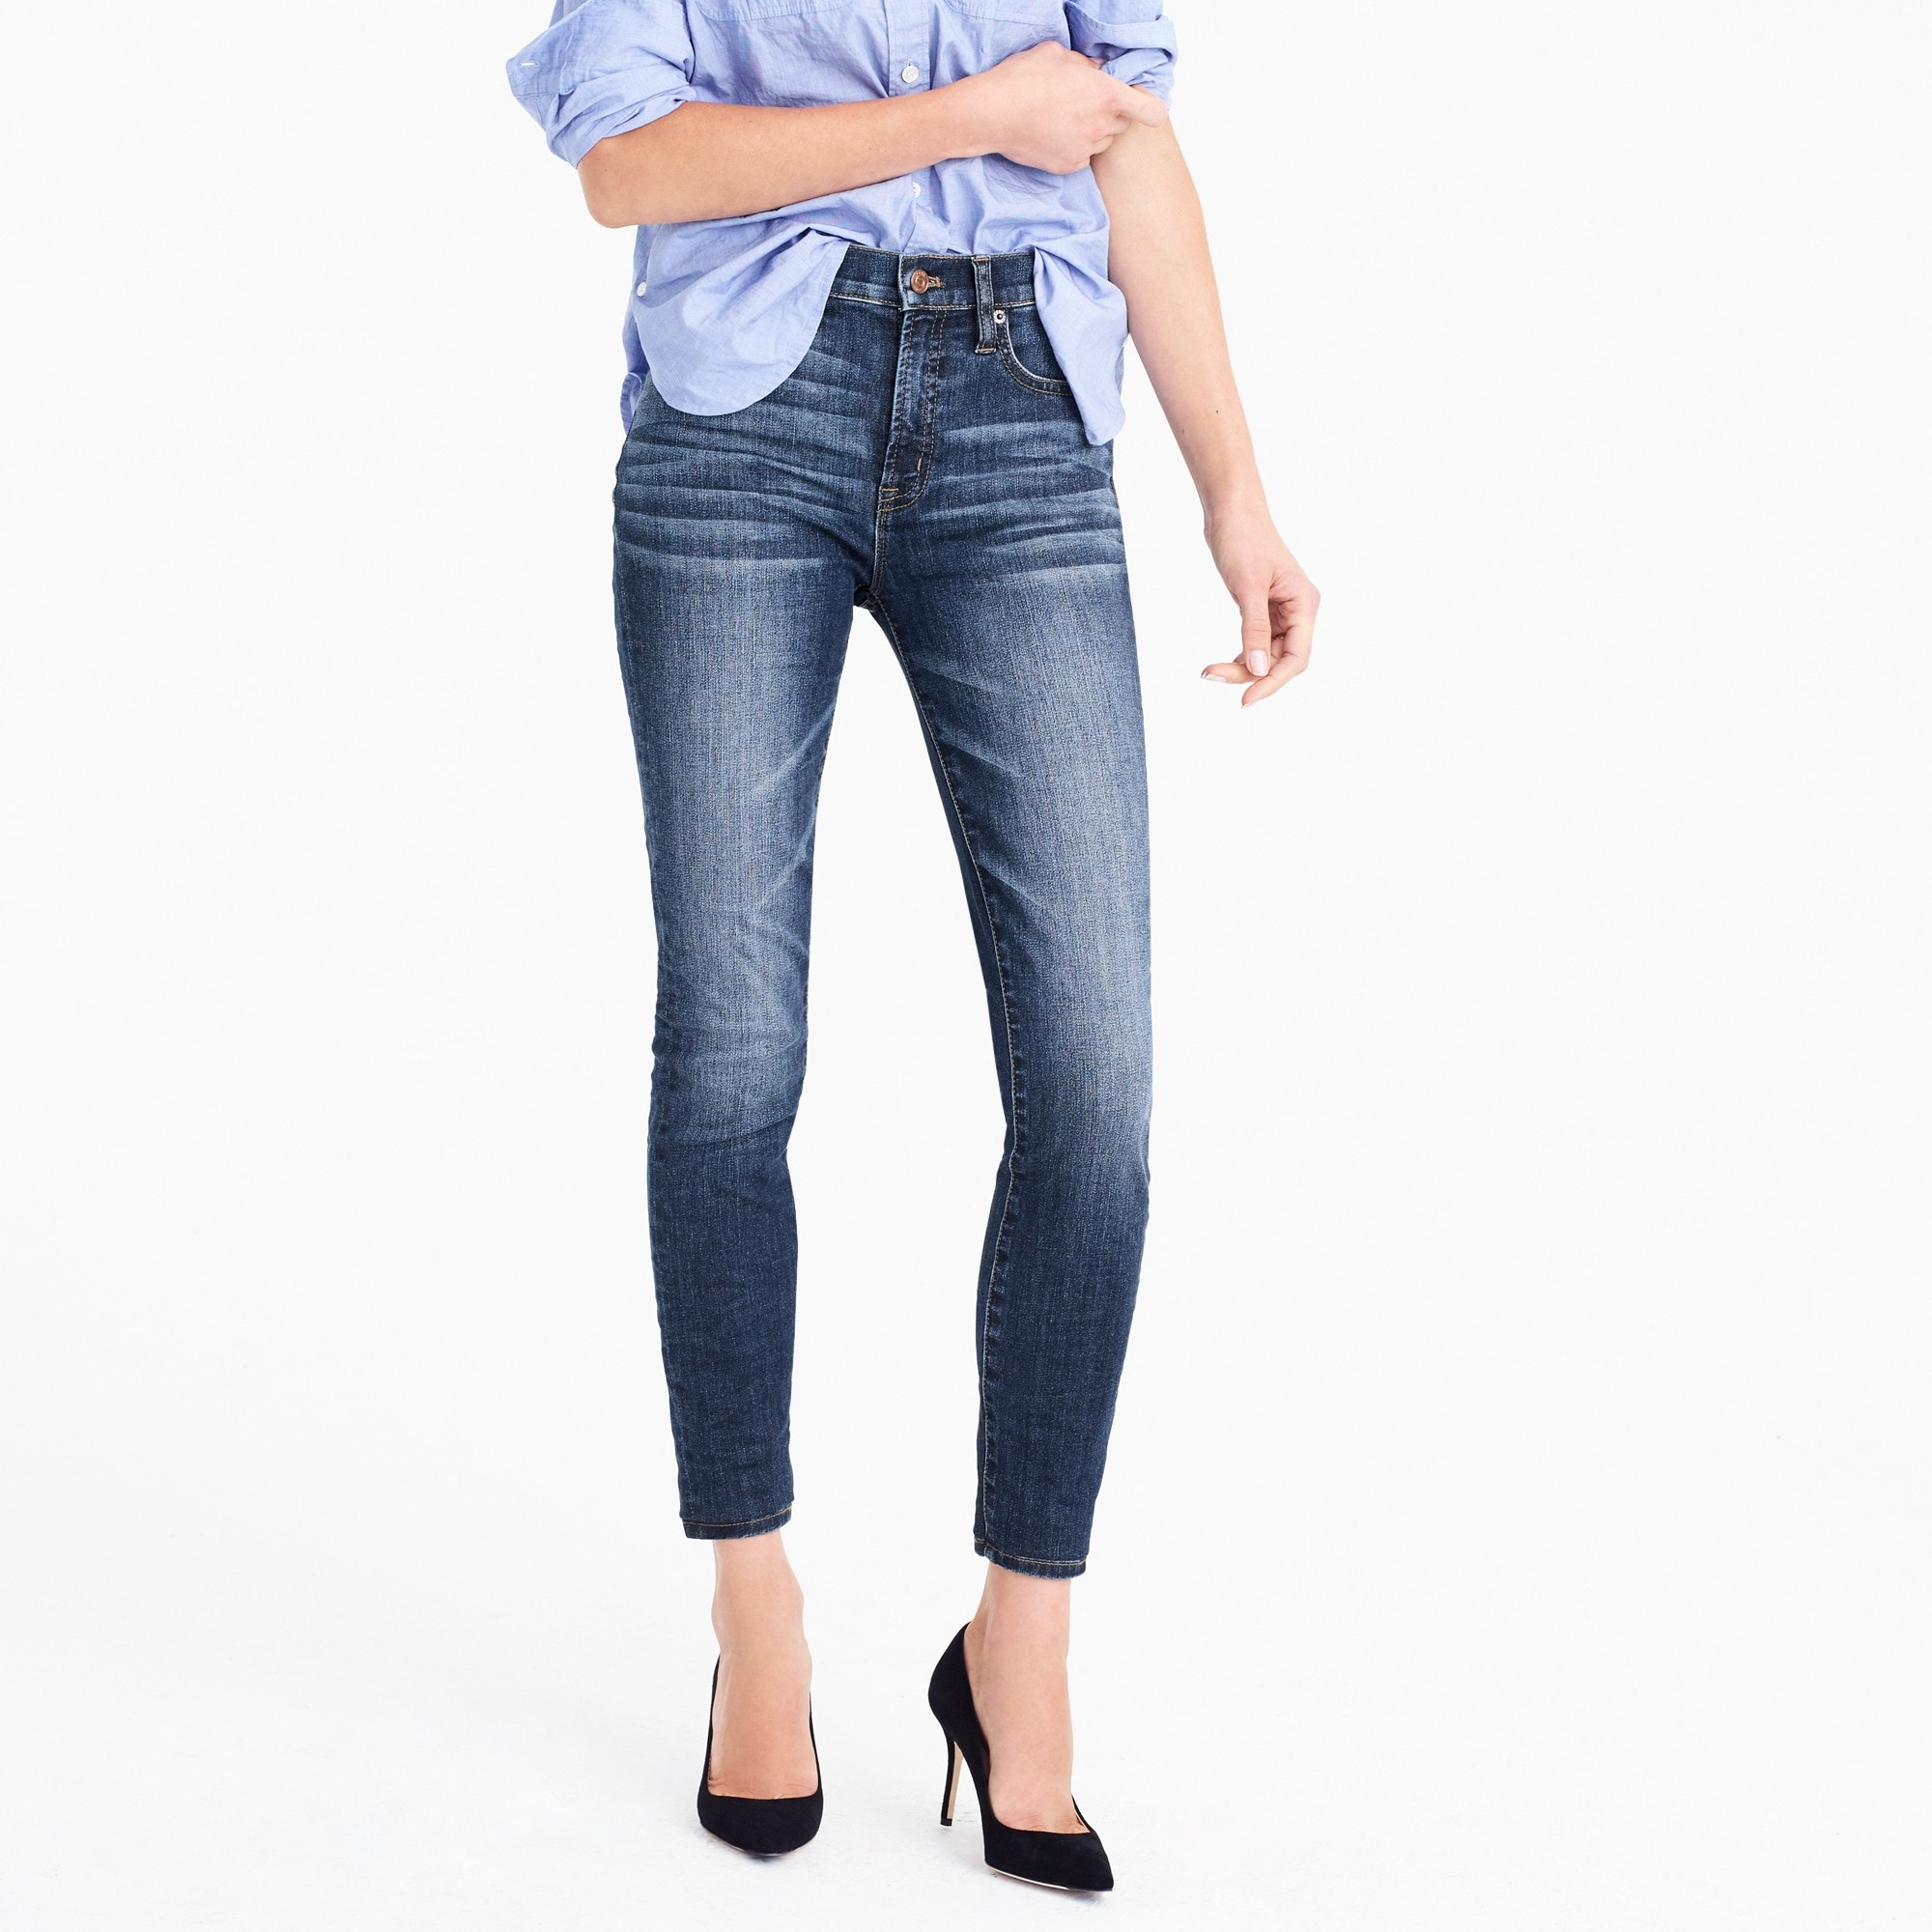 "9"" high-rise toothpick jean in Prescott wash"